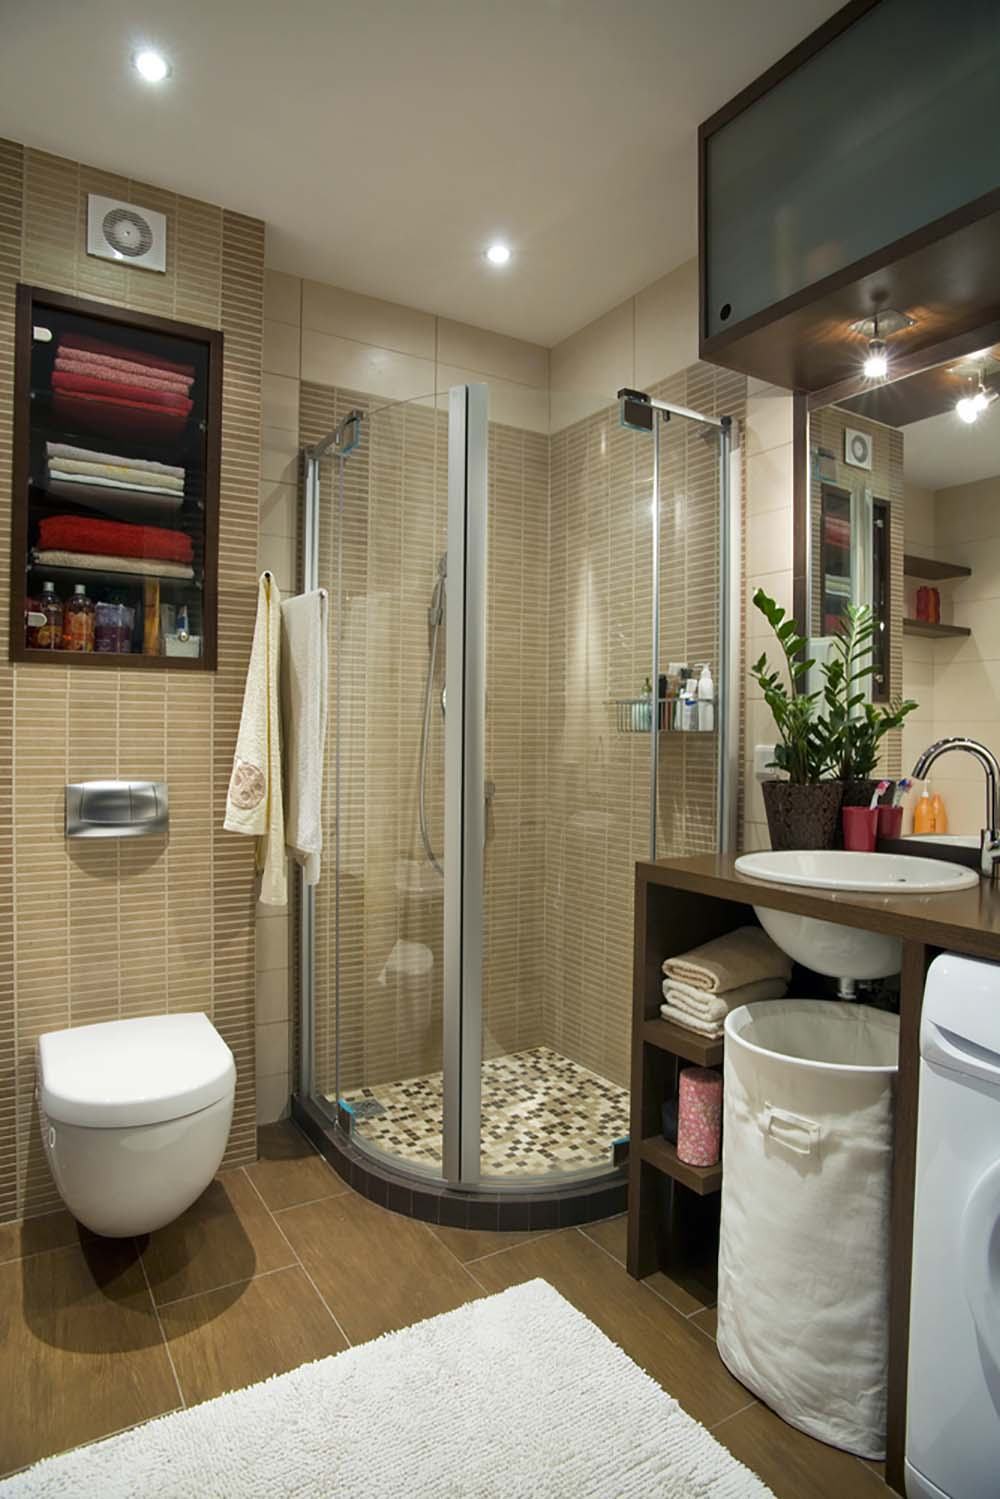 Cuartos De Baño Con Estilo 51 Beautiful And Functional Small Bathrooms